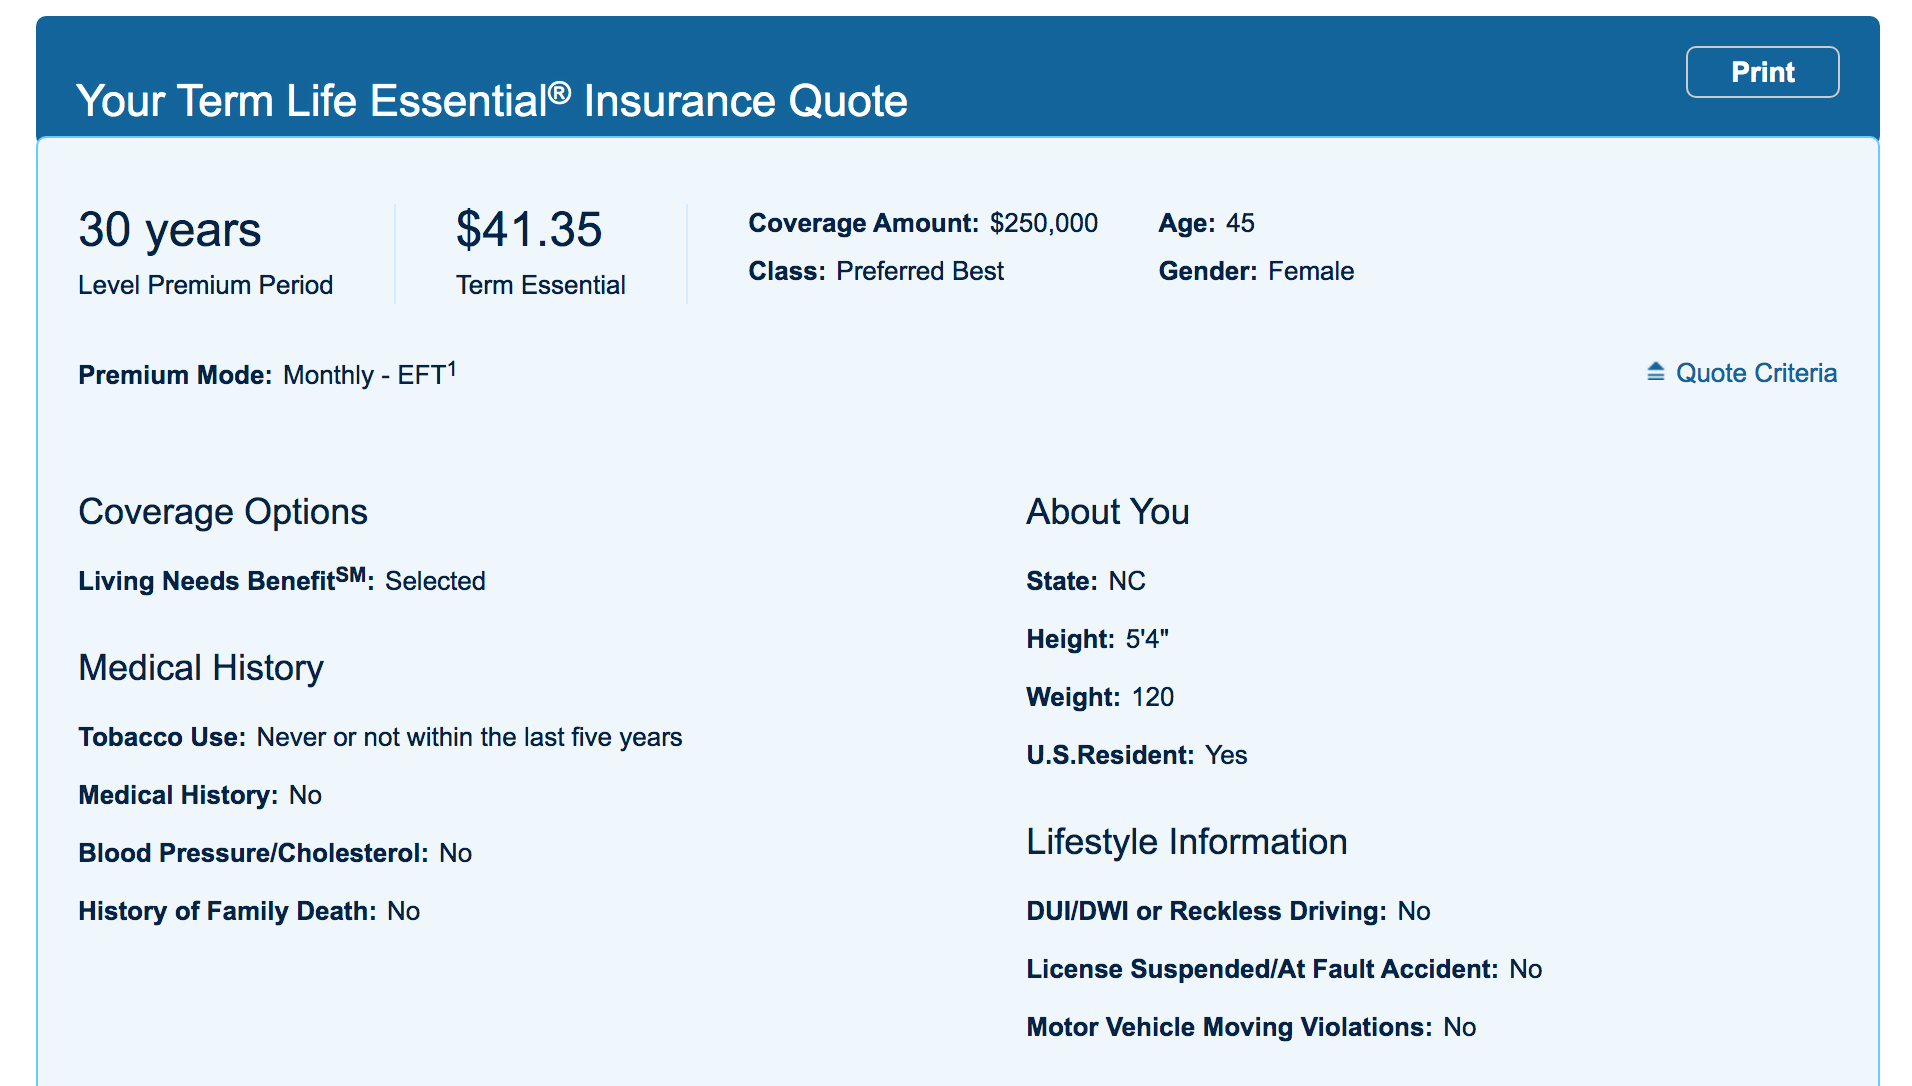 Prudential website Find a Life Insurance Policy page insurance quote results